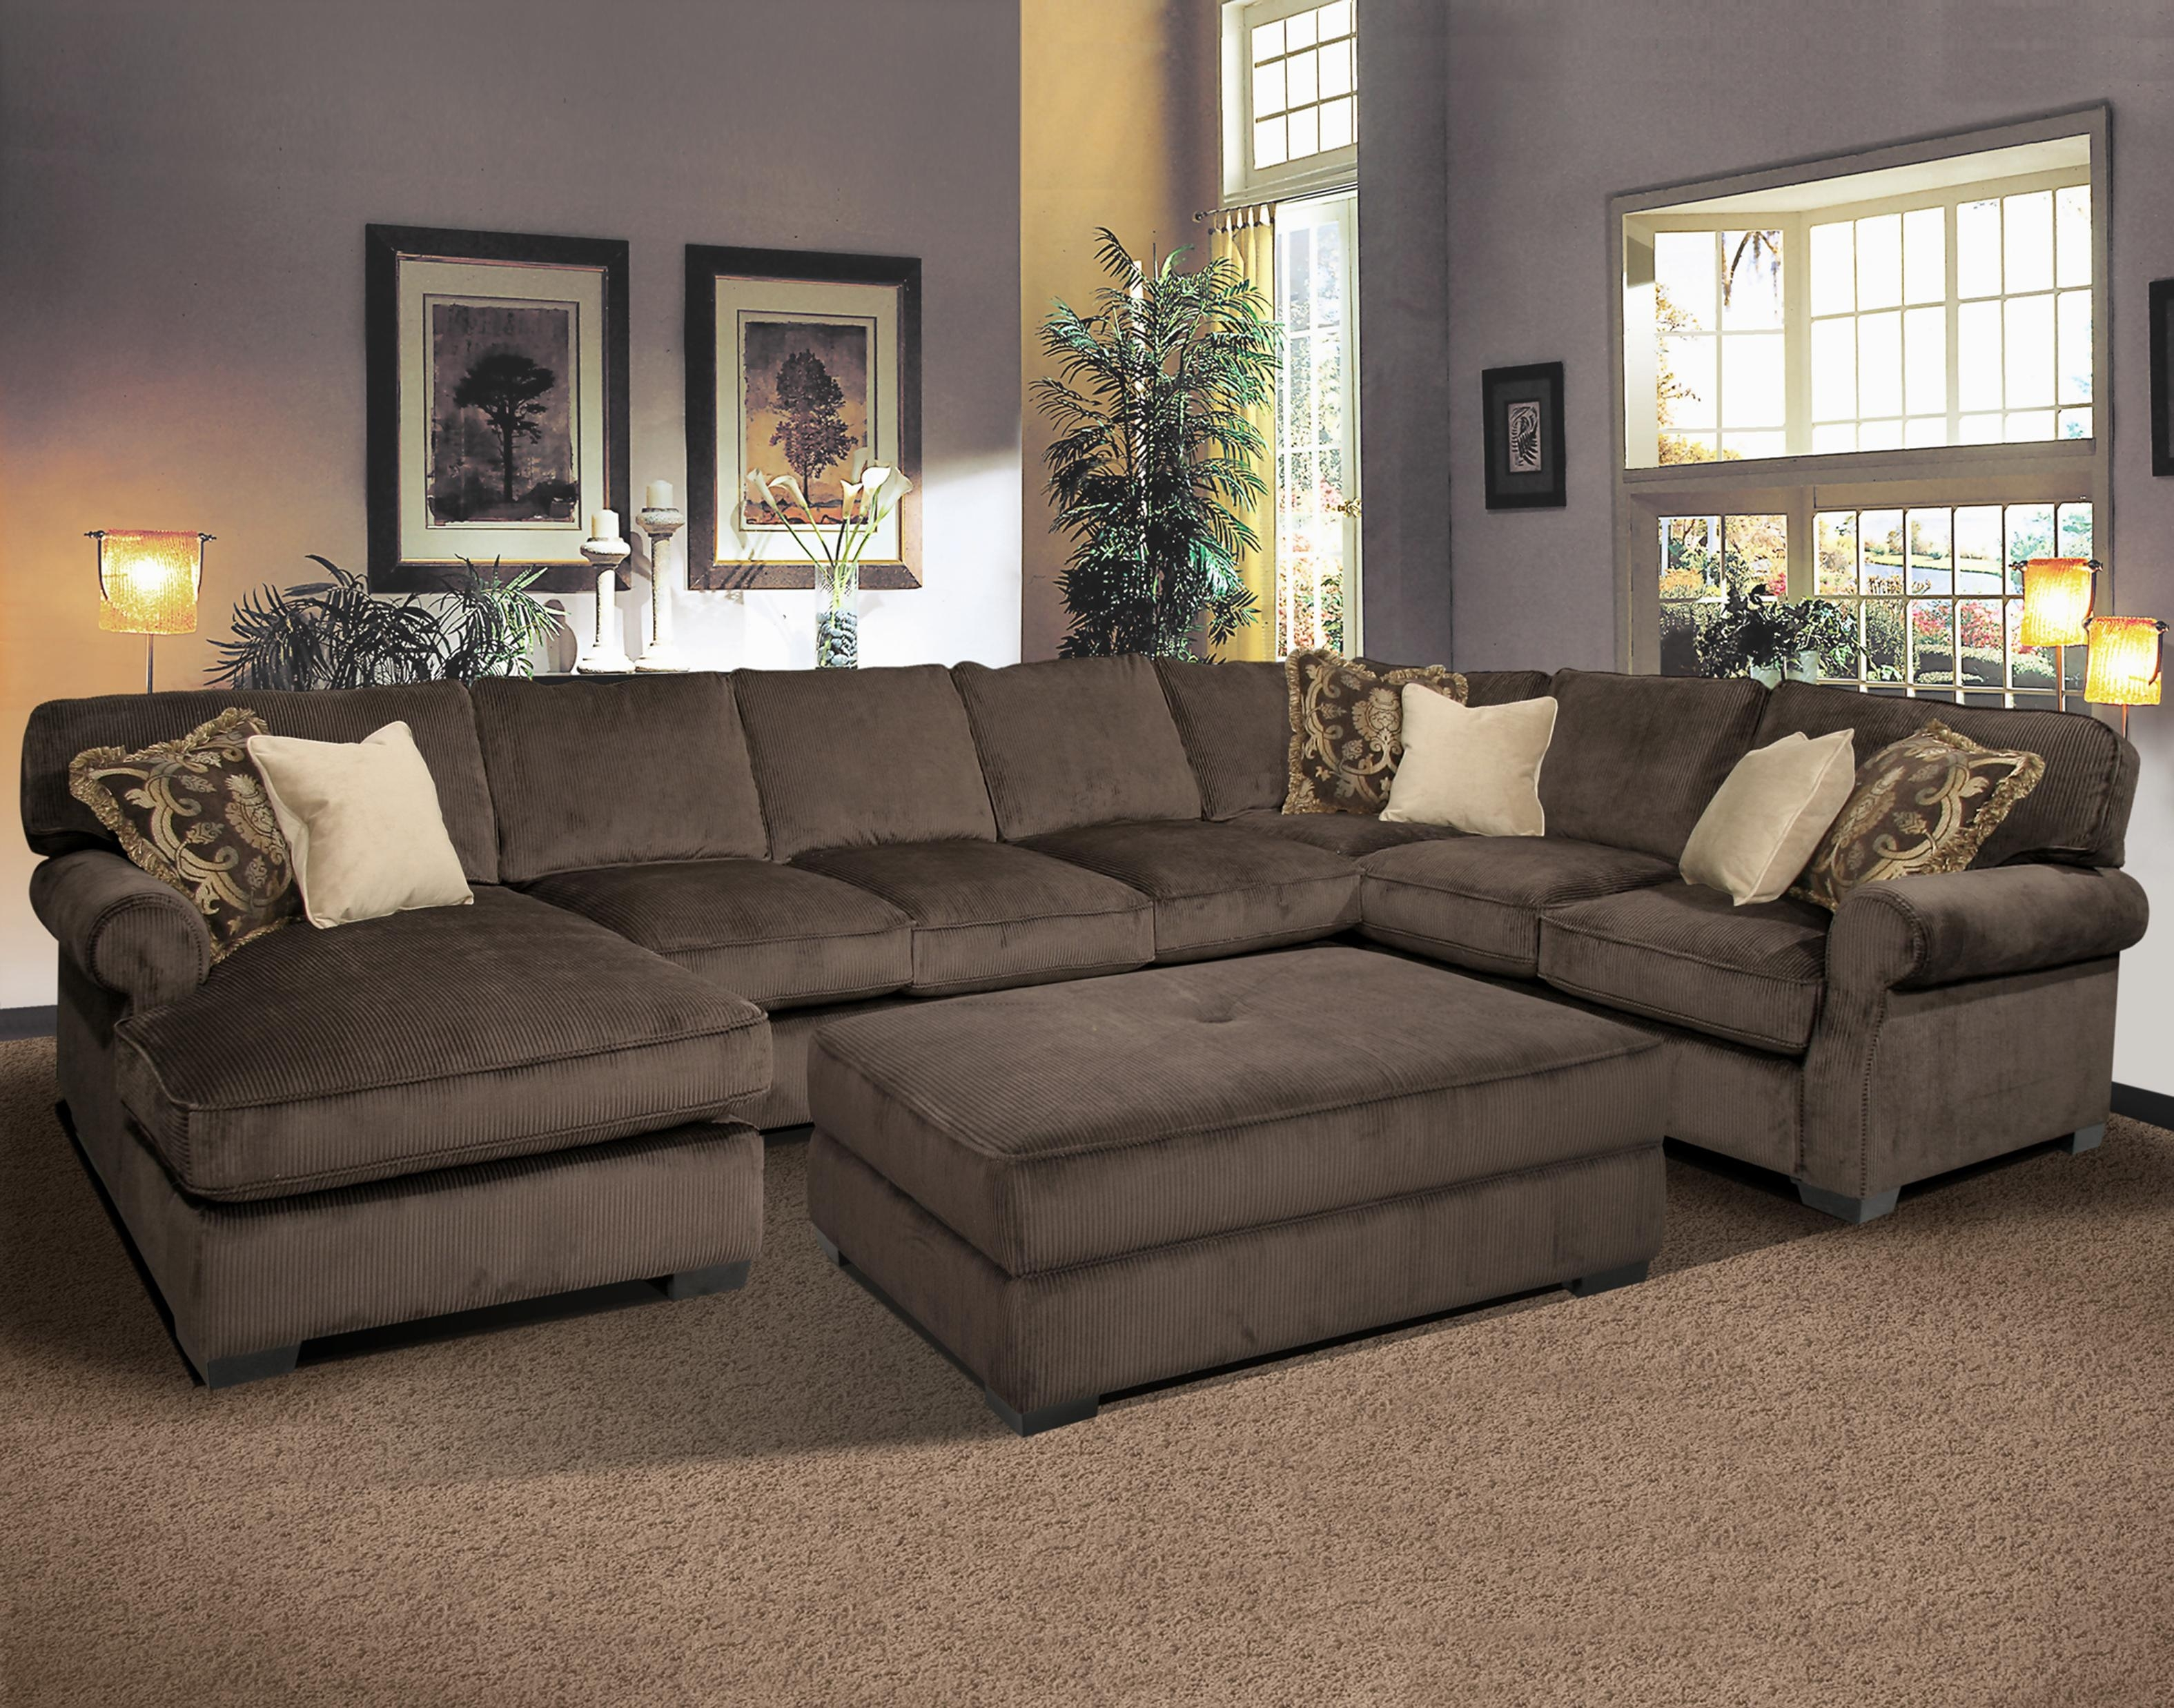 Furniture & Sofa: Cheap Couches | Ashley Furniture Evansville In Jacksonville Nc Sectional Sofas (View 8 of 10)